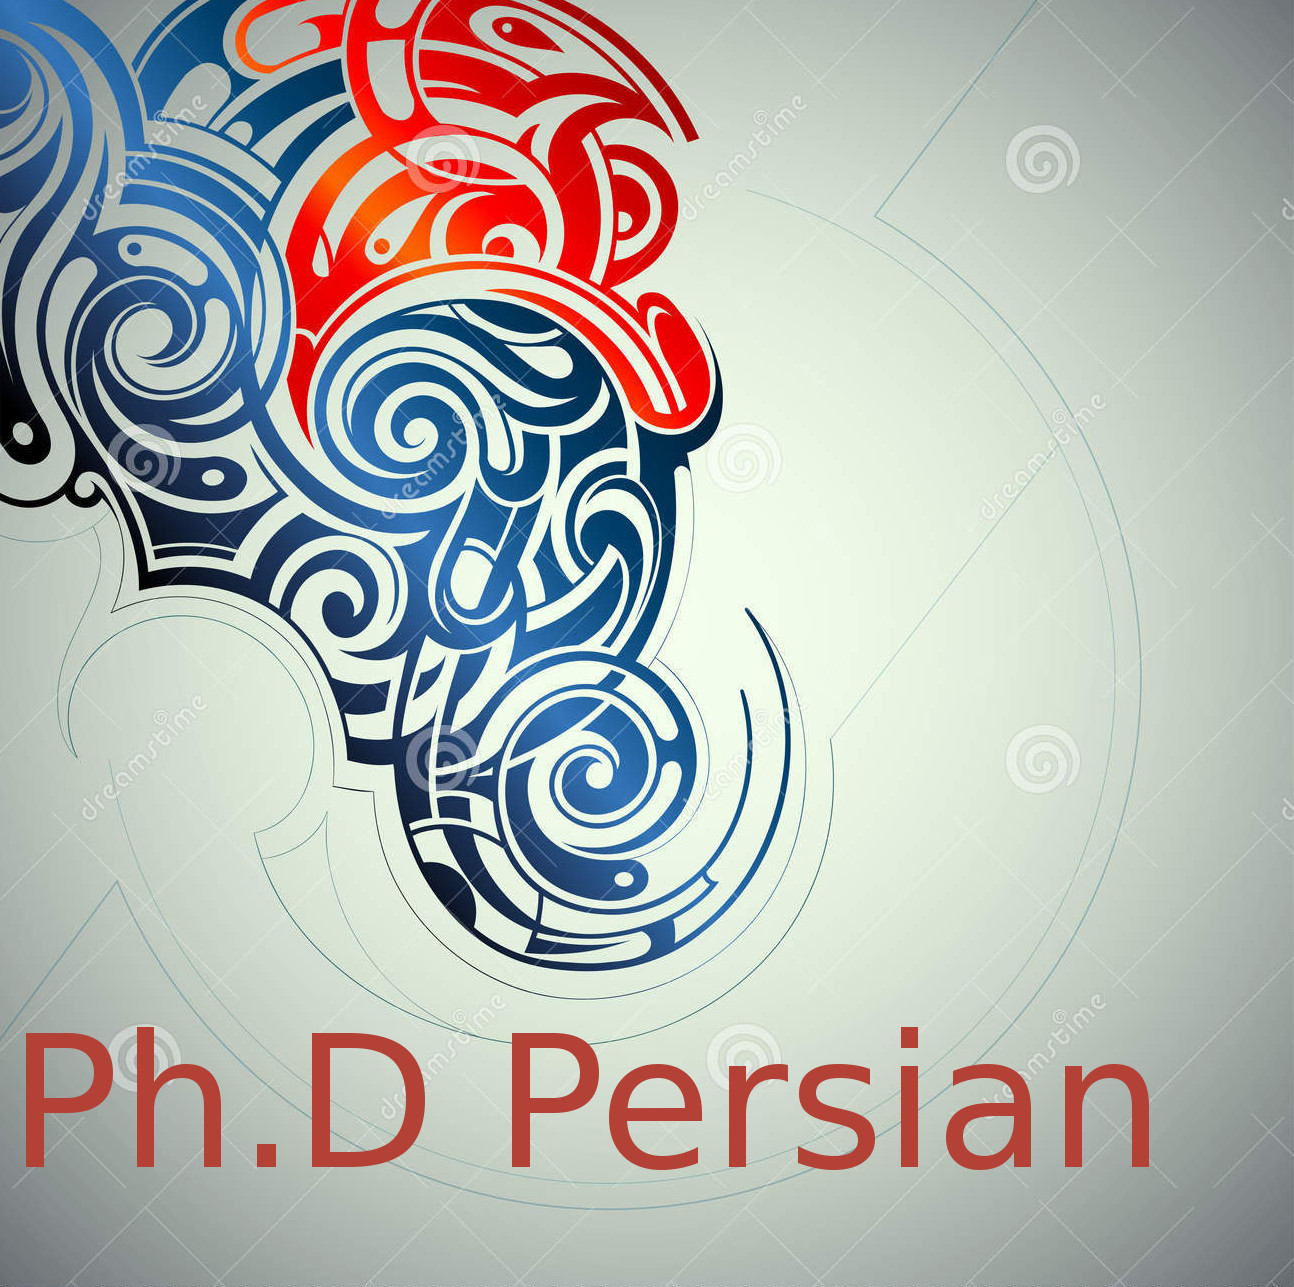 Doctor of Philosophy (PhD Persian)